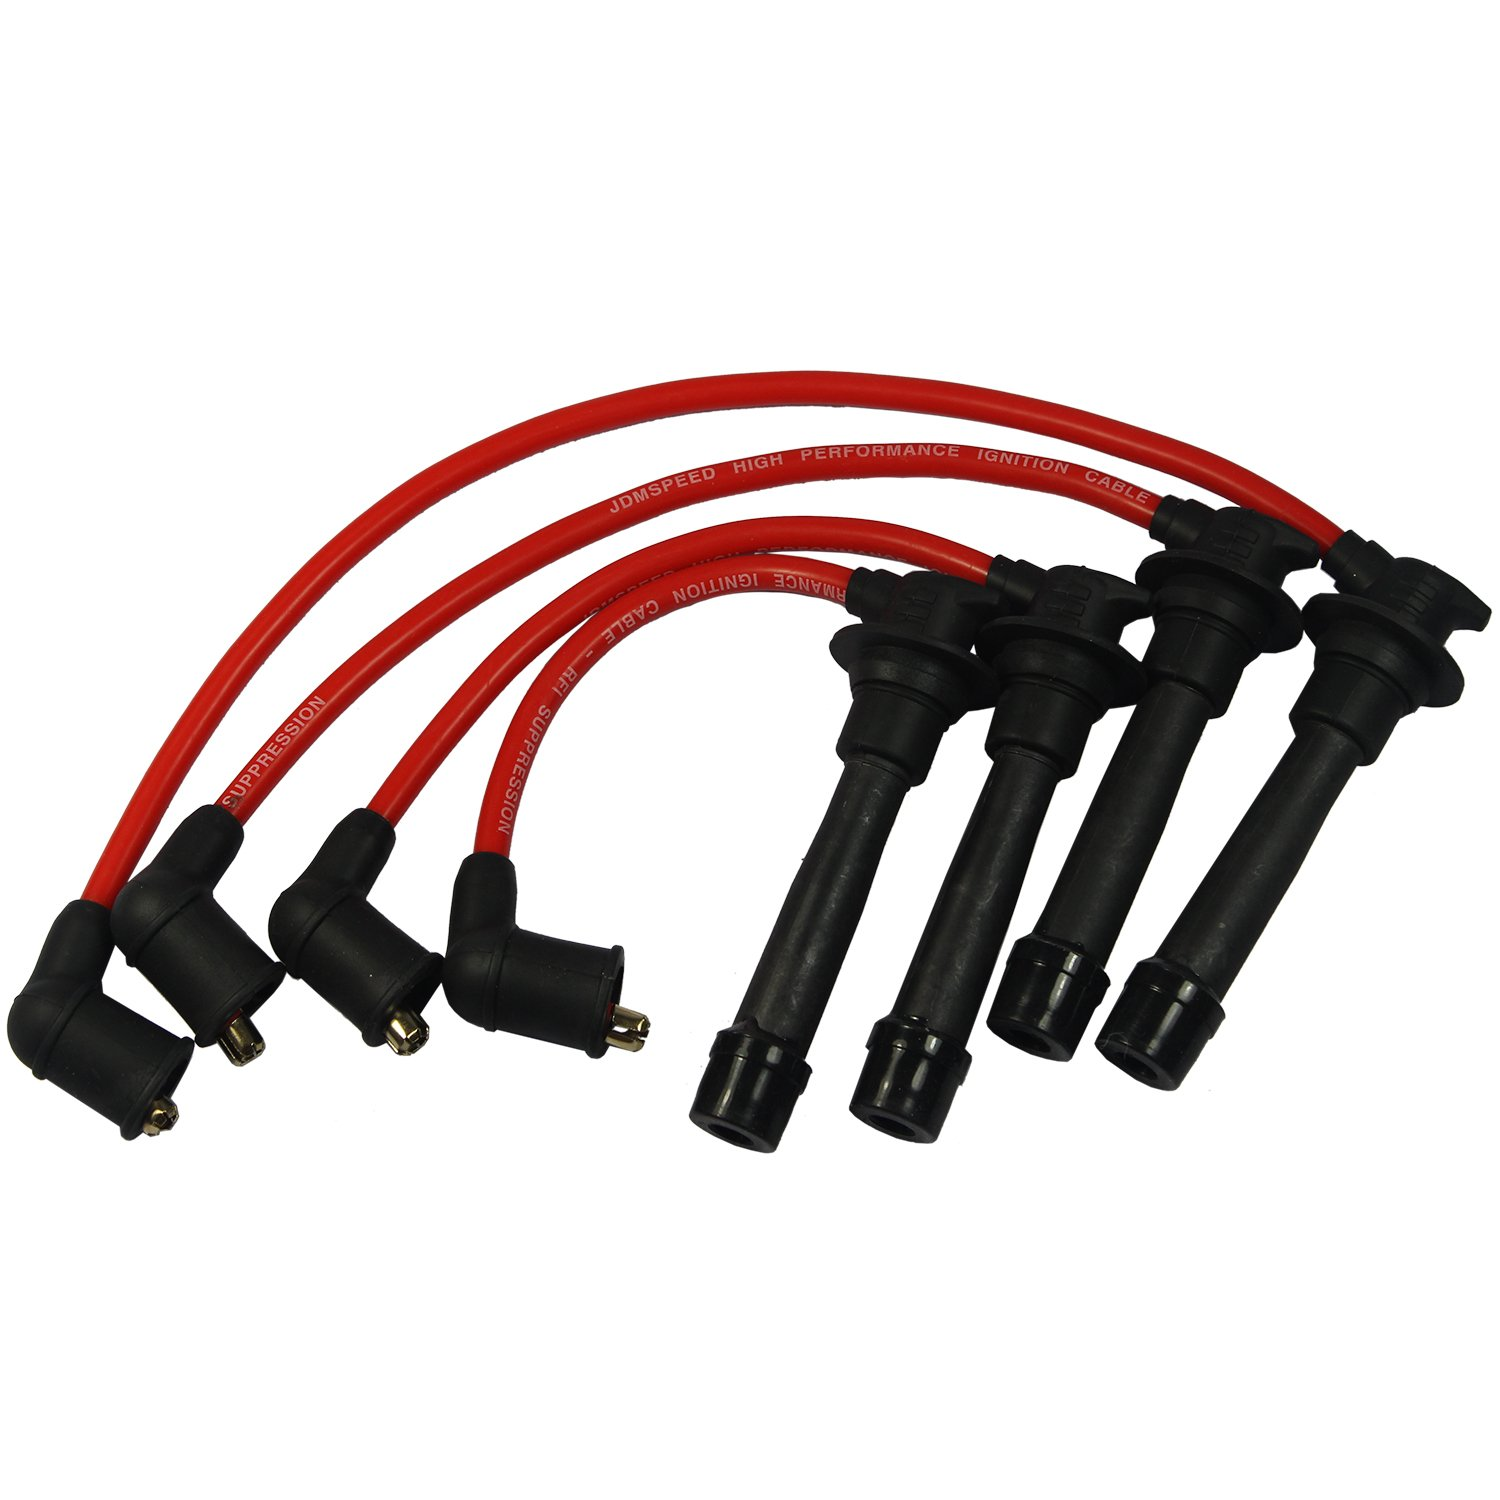 JDMSPEED New Red Ignition Spark Plug Wires Set for 90-00 Mazda Miata 1.6L 1.8L by JDMSPEED